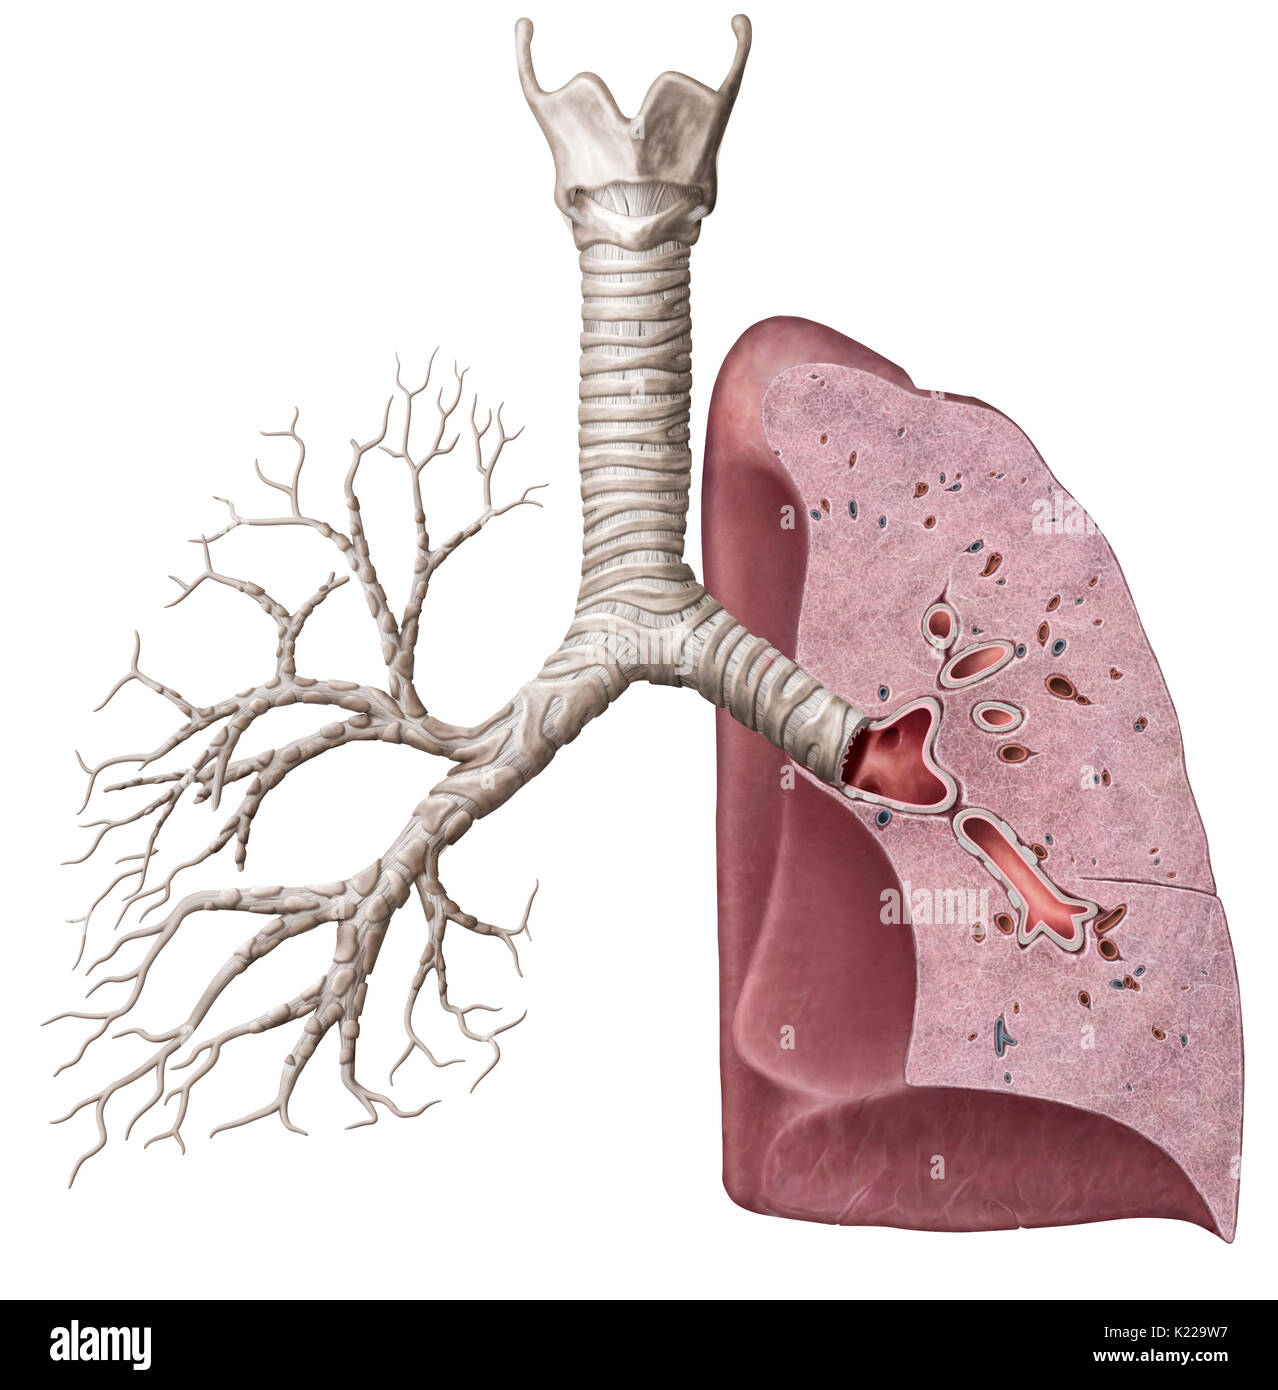 Lower organs of the respiratory system stock photos lower organs this image shows a cross section of the lungs which reveals the main bronchus ccuart Gallery